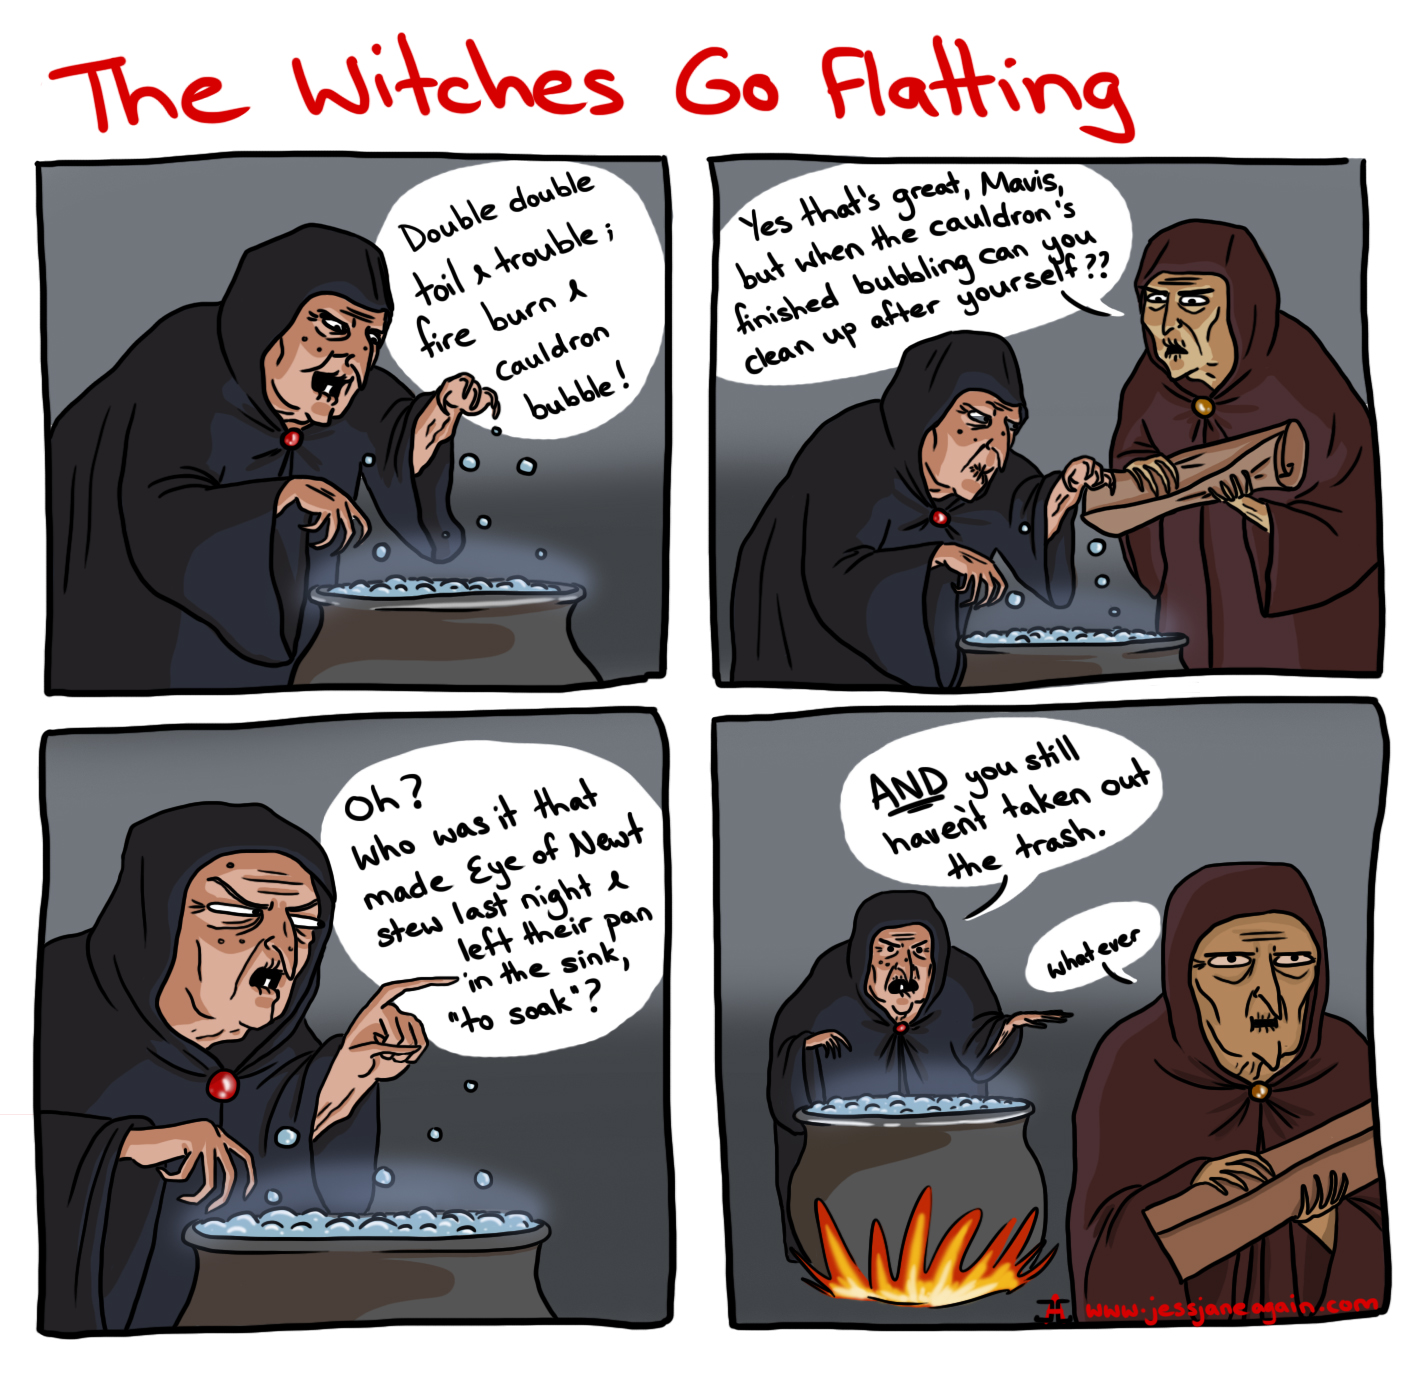 shakespeare's witches as flatmates